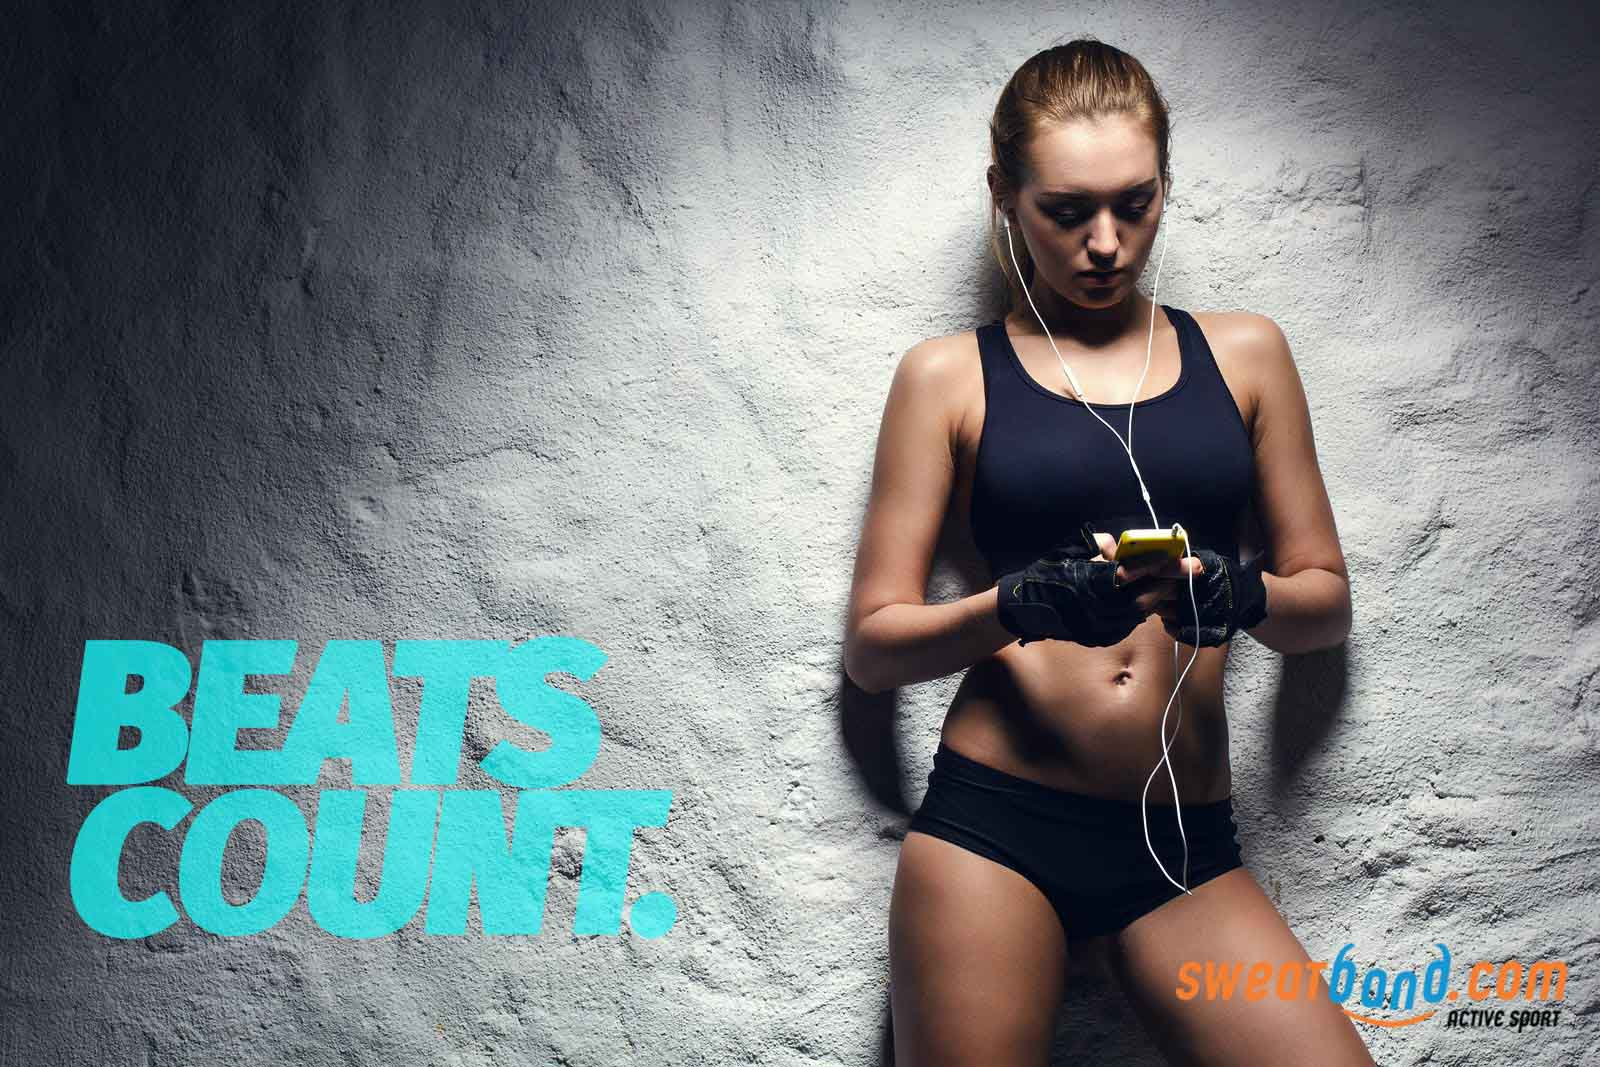 Count those music beats as you train to do so more effectively